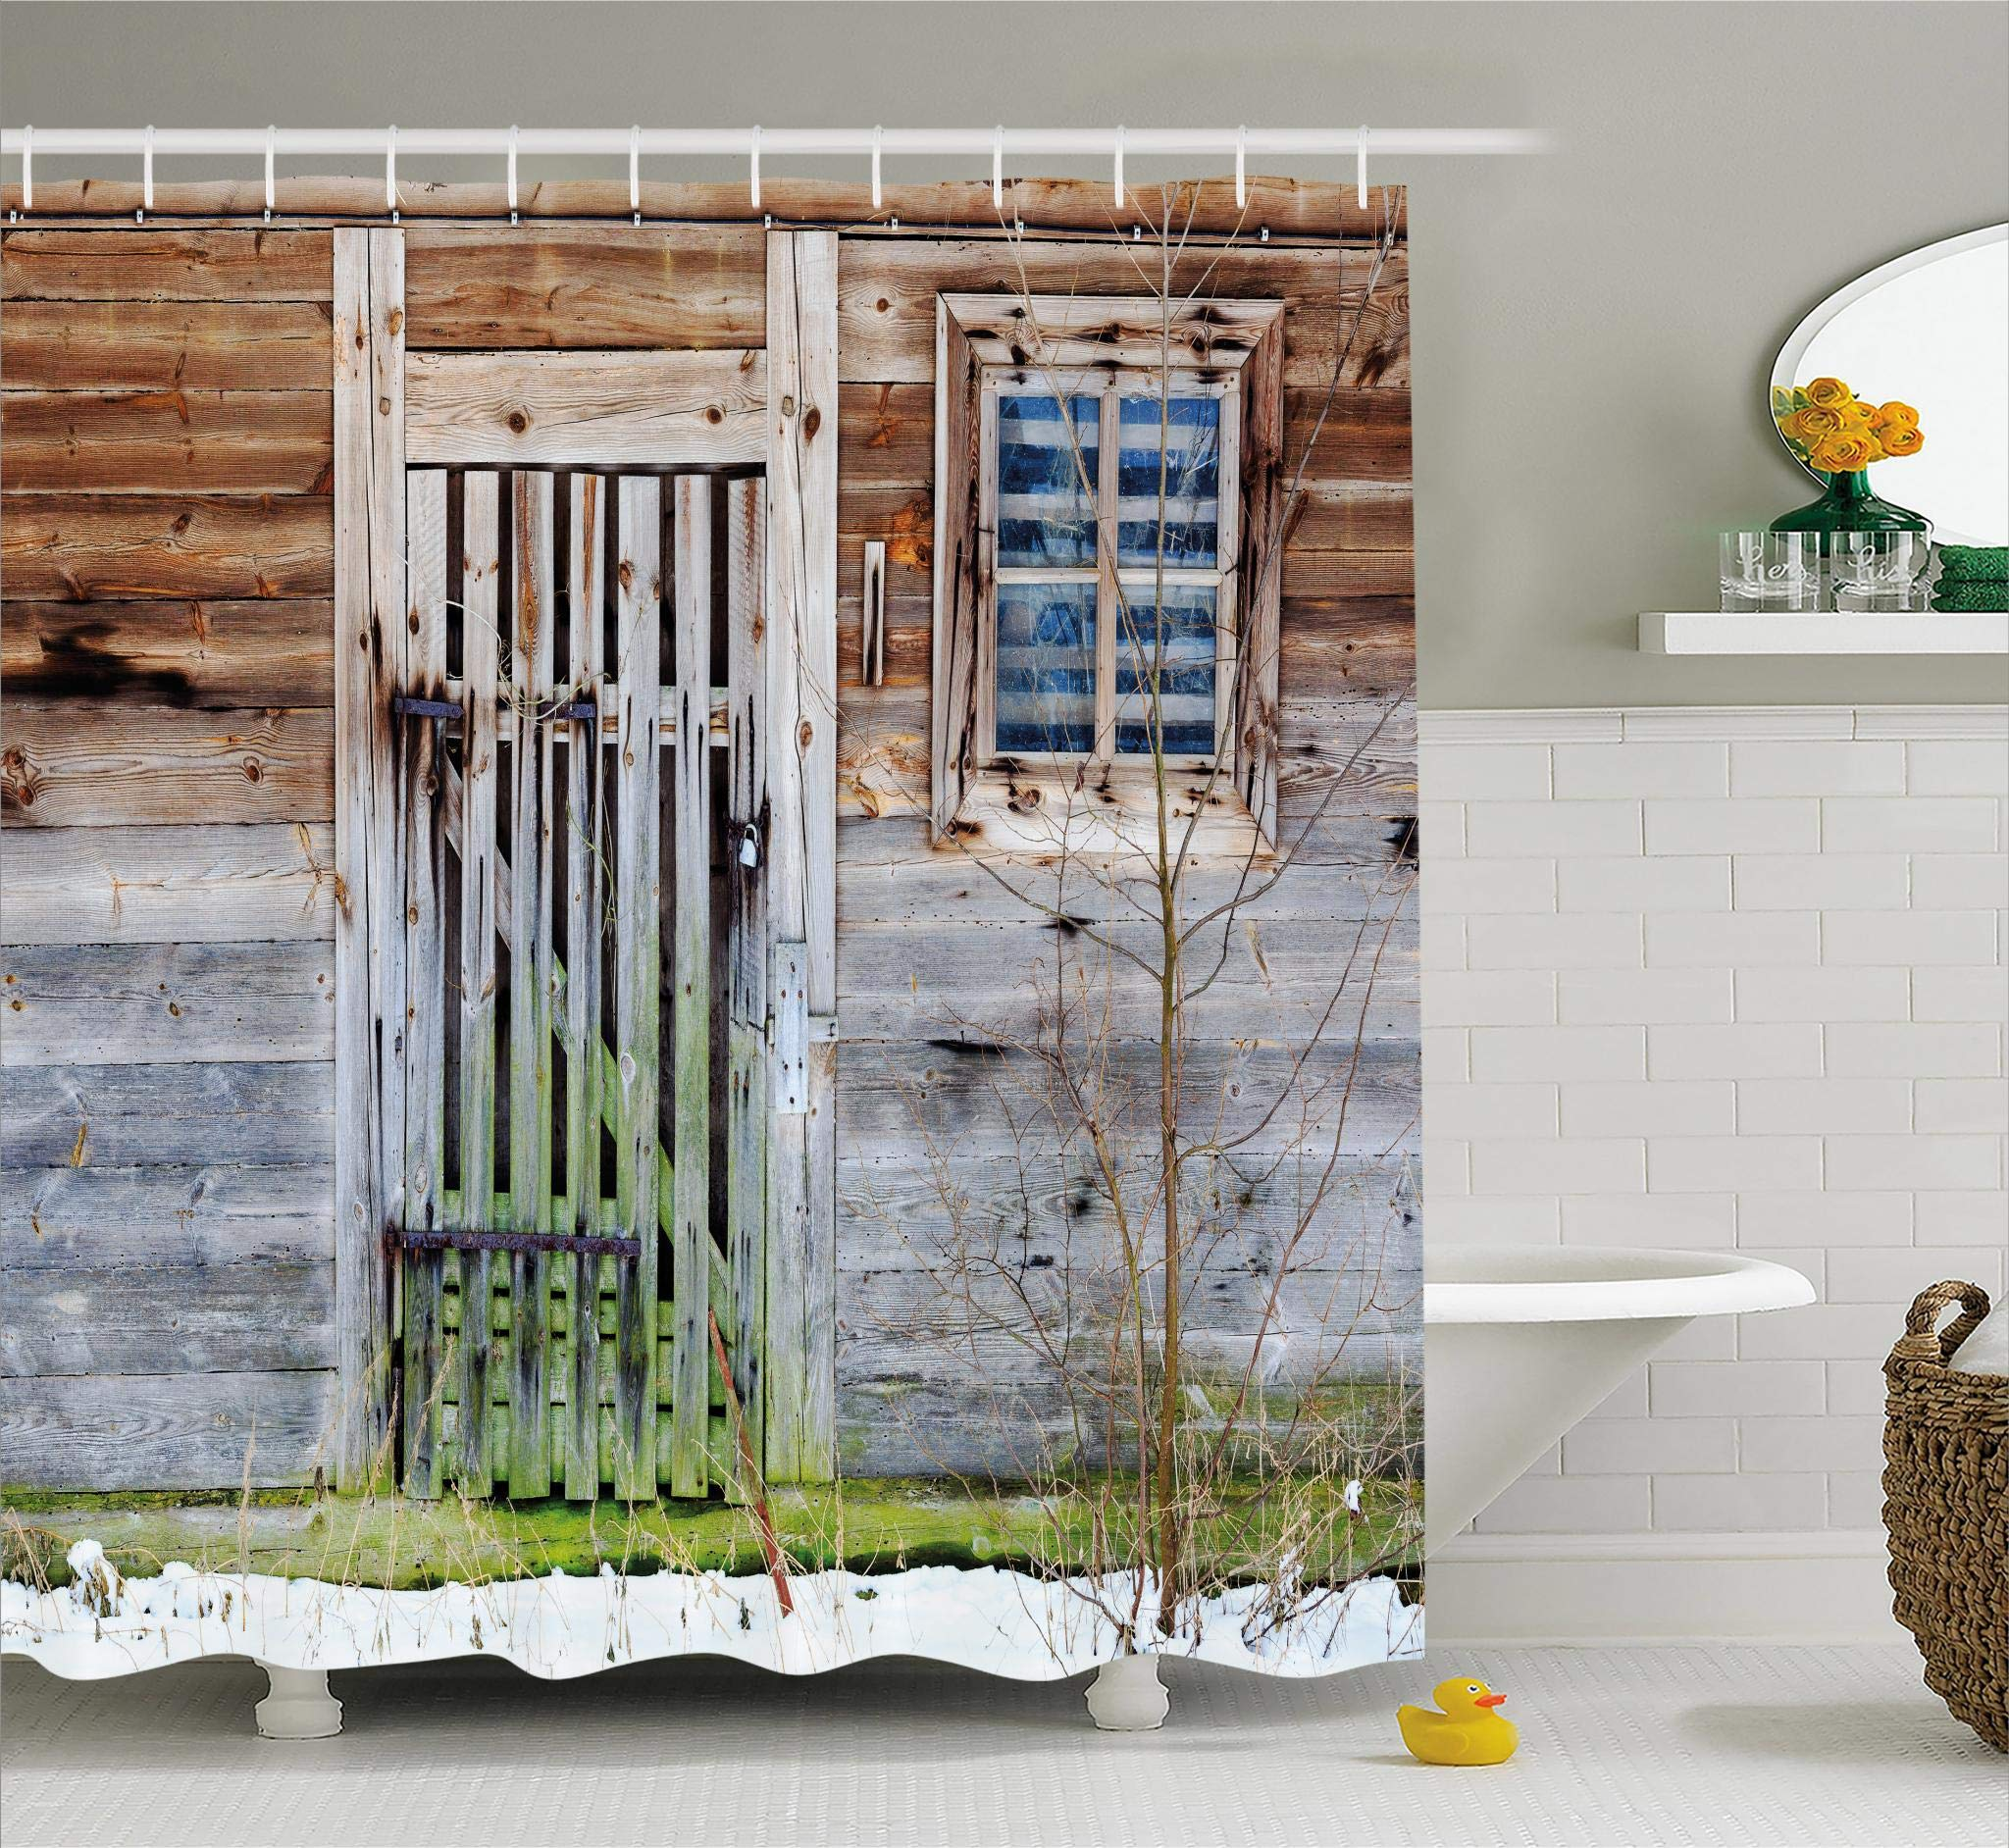 Ambesonne Primitive Country Decor Shower Curtain, Neglected Old Farmhouse Rustic Wooden Door and Window Rural, Fabric Bathroom Decor Set with Hooks, 70 Inches, Brown Green Silver